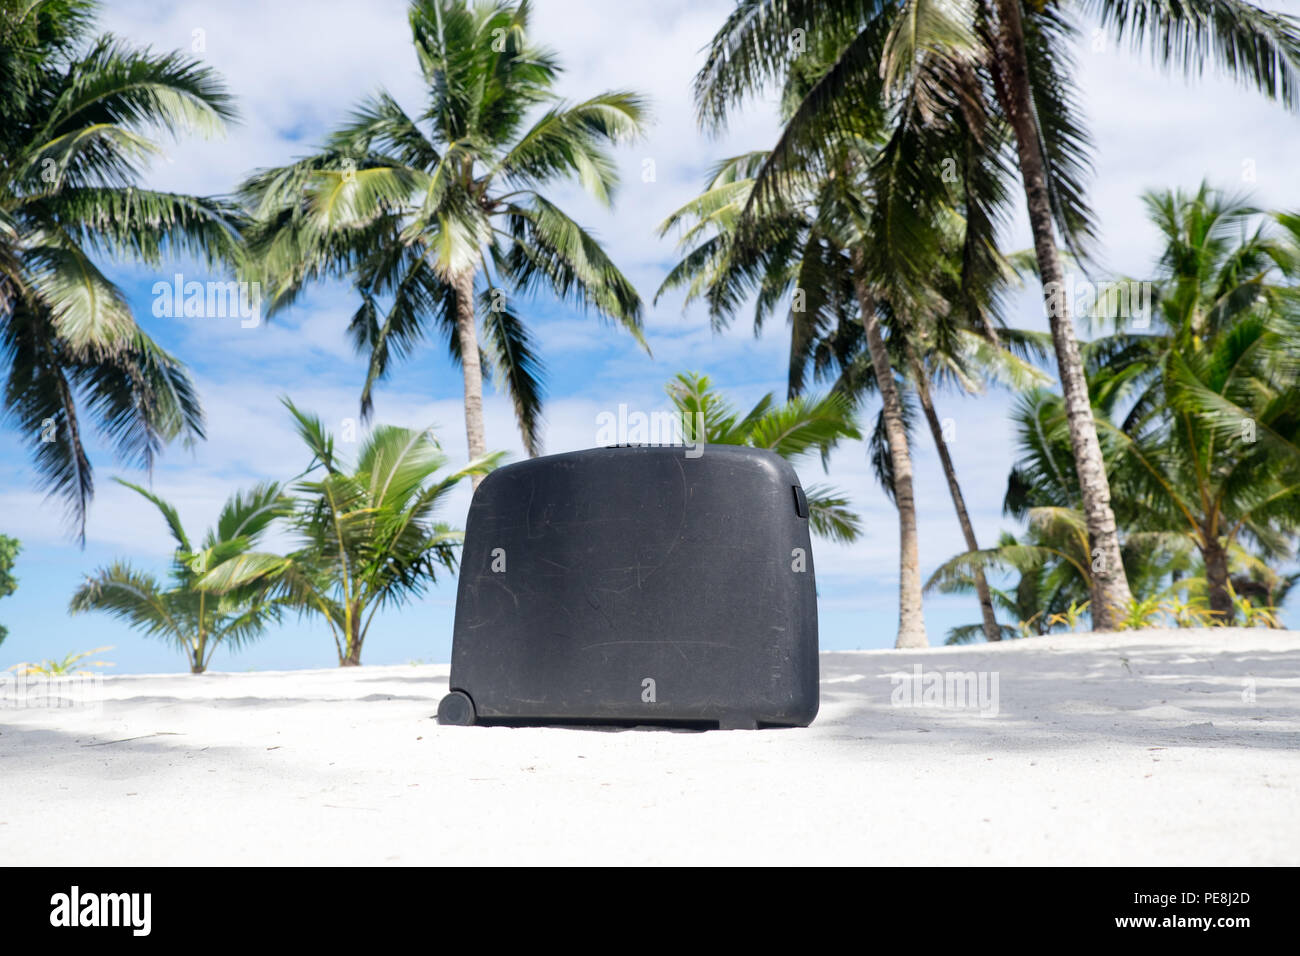 Old, well traveled scratched suitcase on tropical sandy beach with palm trees - Upolu Island, Western Samoa, South Pacific - landscape orientation - Stock Image